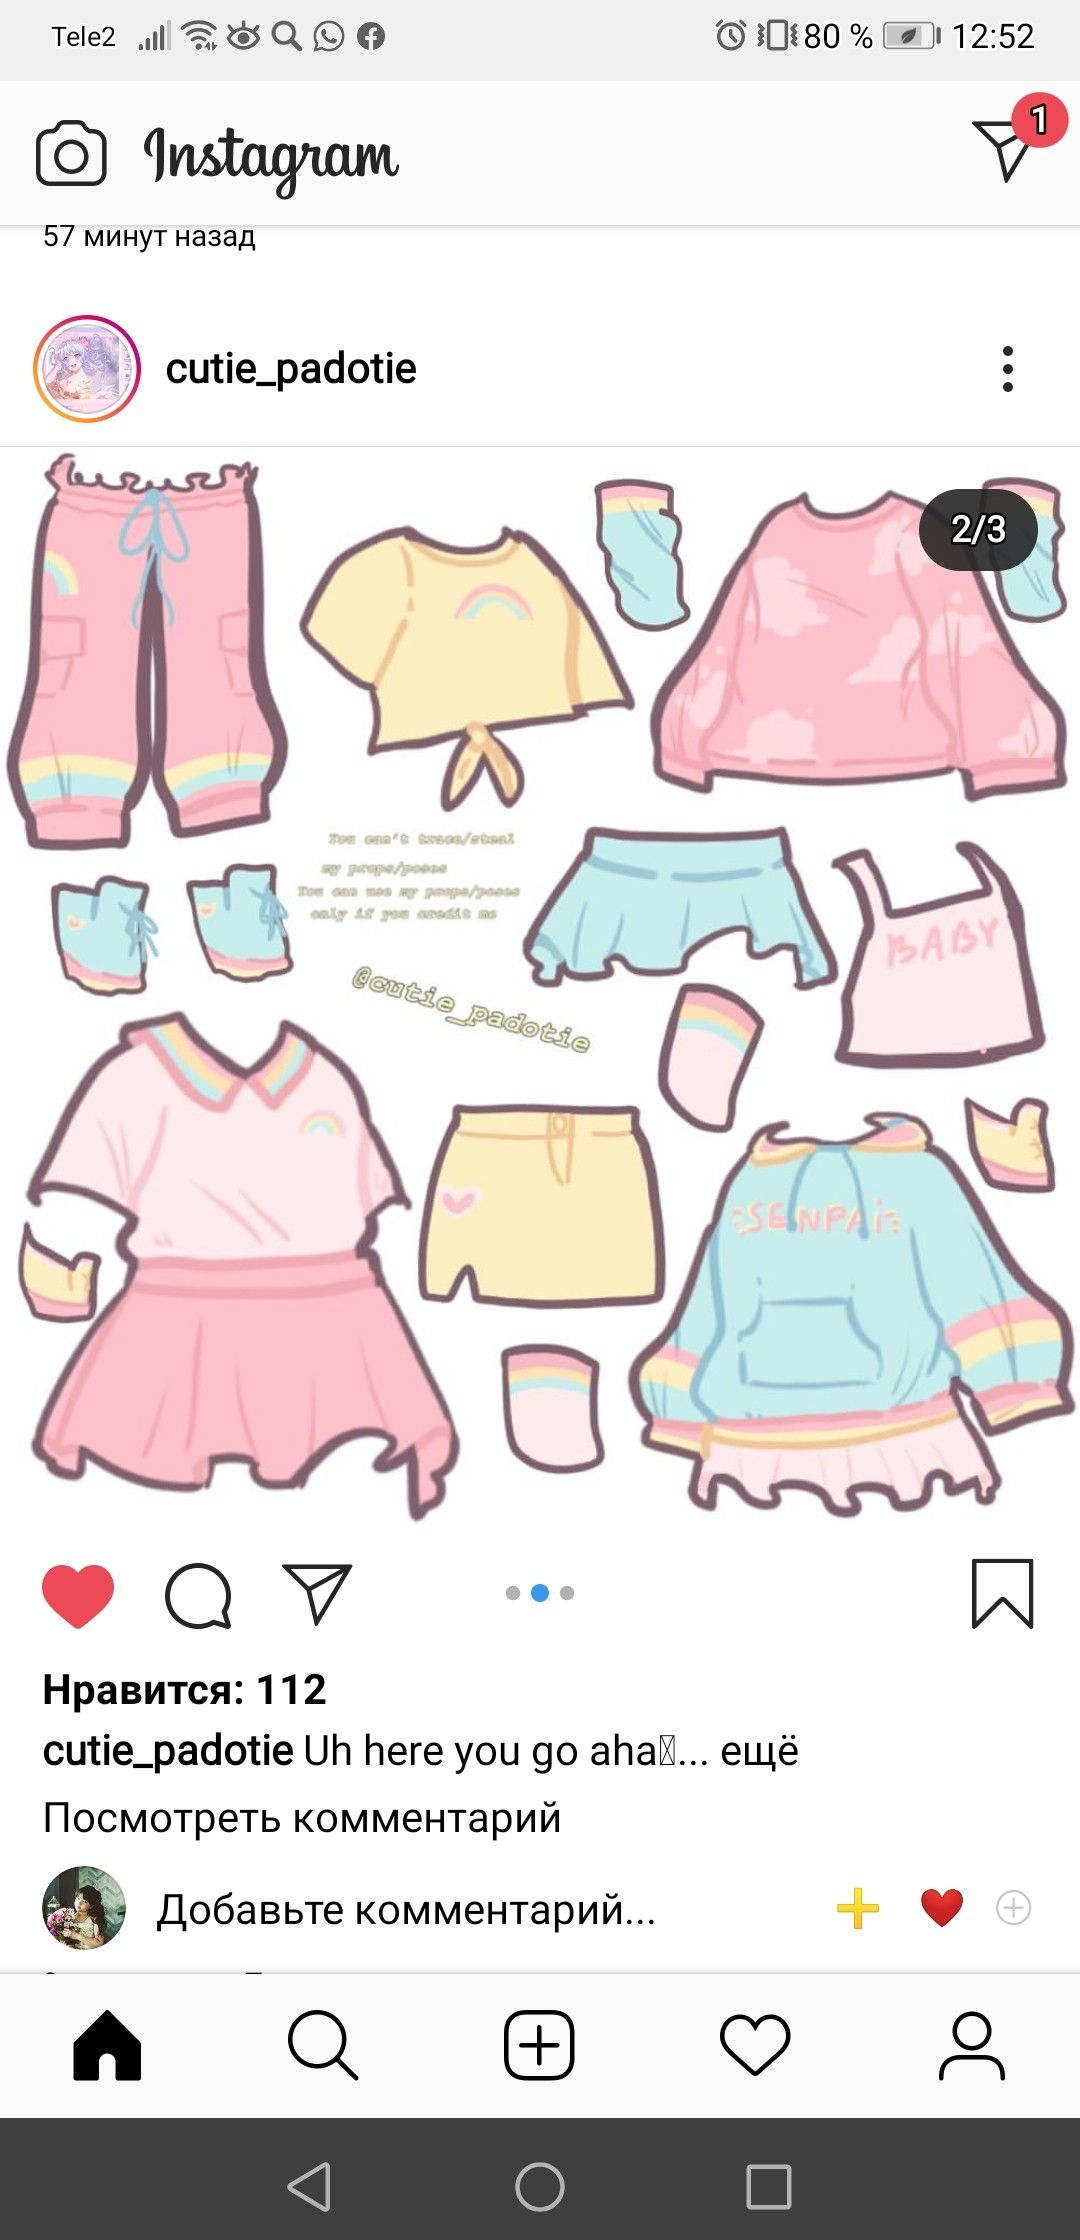 24+ Anime girl clothes template ideas in 2021